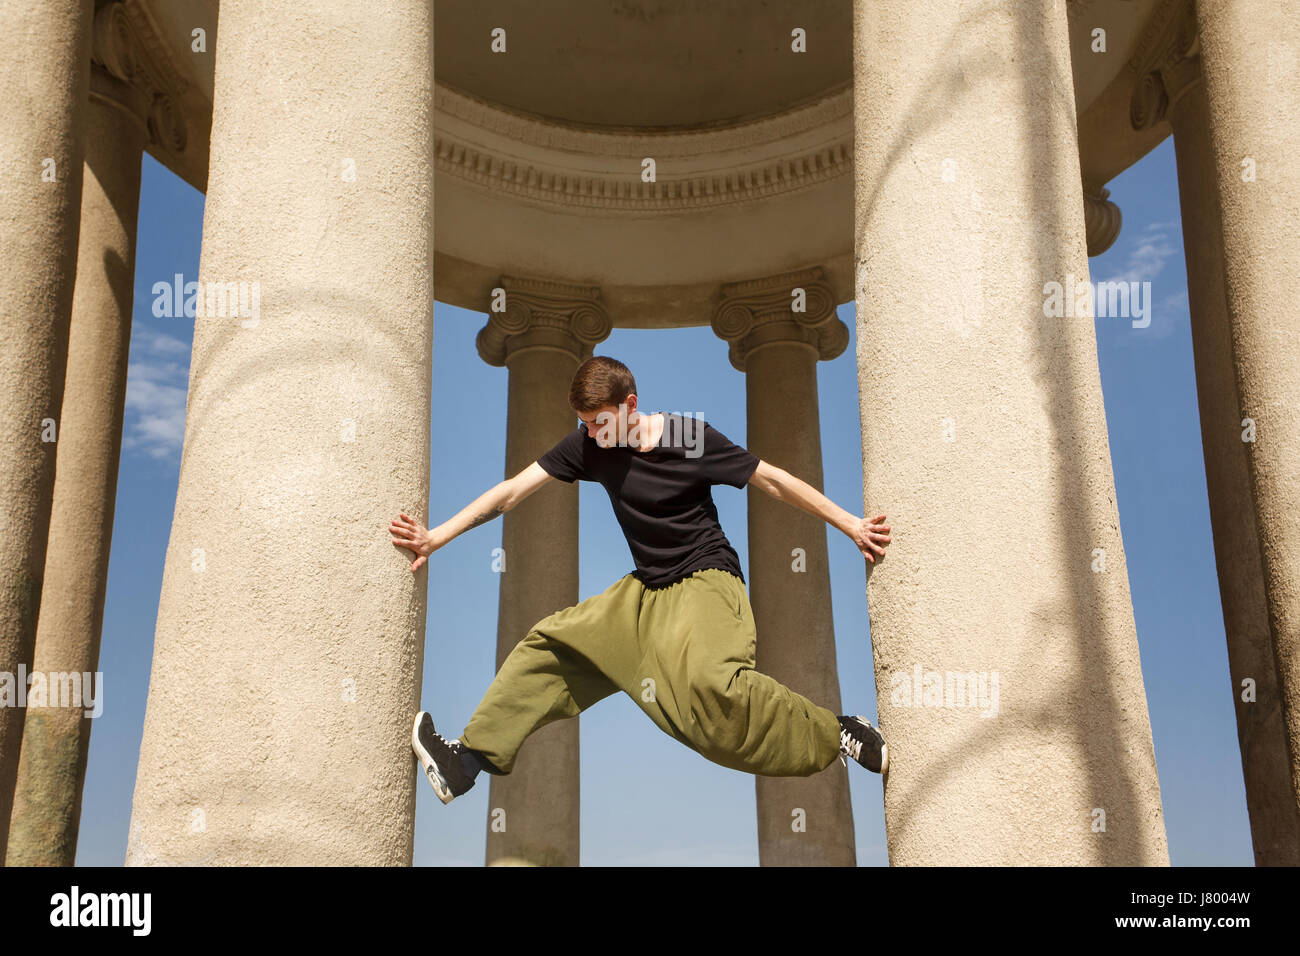 Young man climbs up honey columns. Parkour in the urban space. Sport in the city. Sport Activities outdoors. Acrobatics - Stock Image